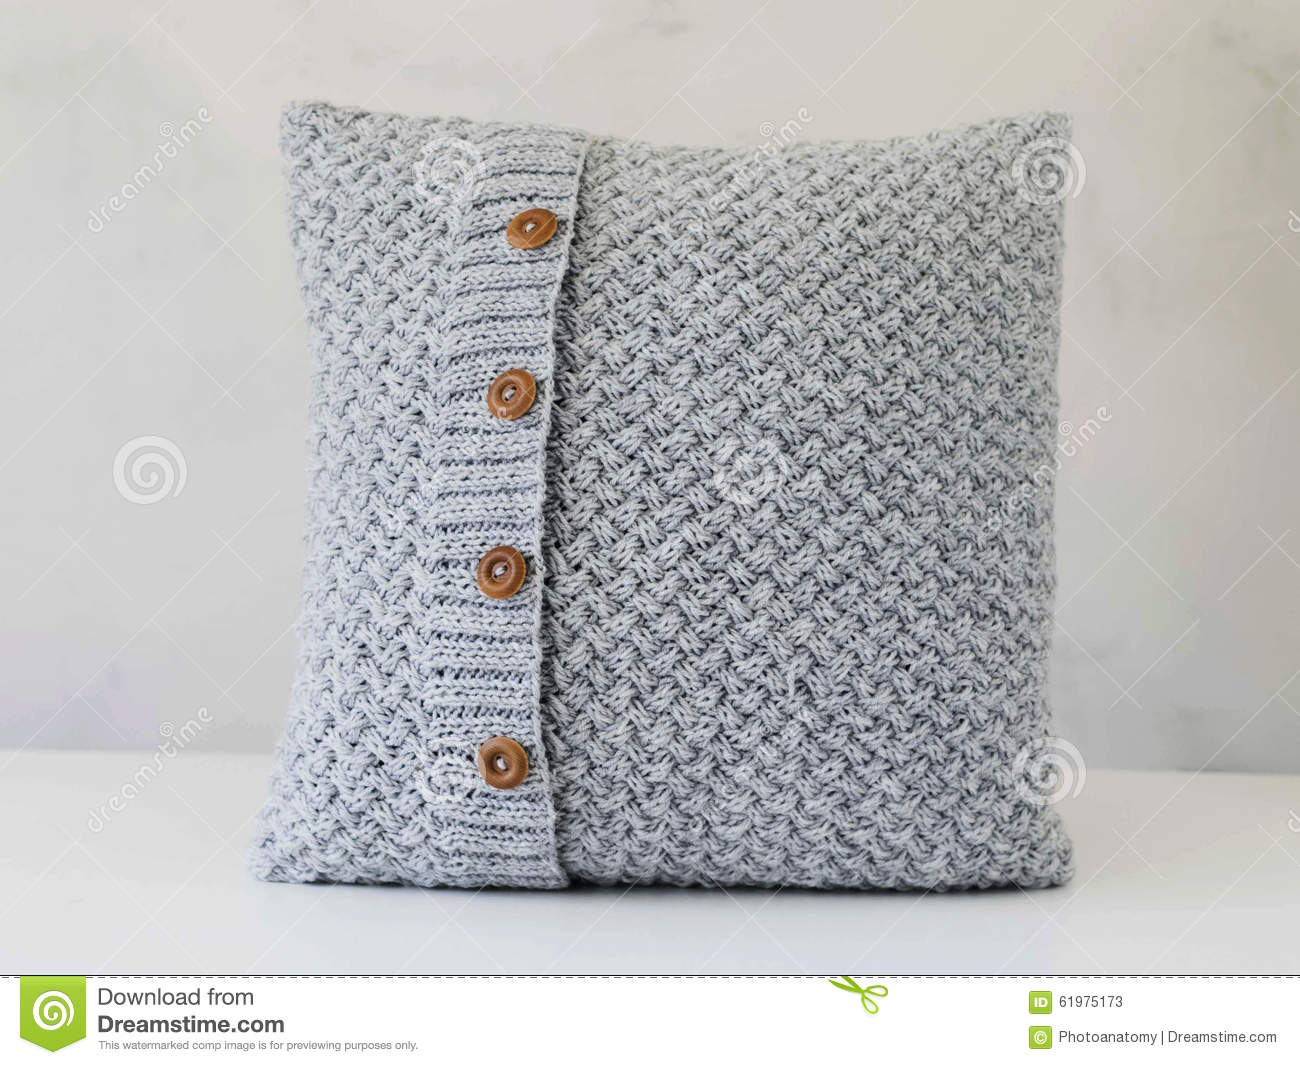 gestricktes graues kissen mit h lzernen kn pfen stockfoto. Black Bedroom Furniture Sets. Home Design Ideas